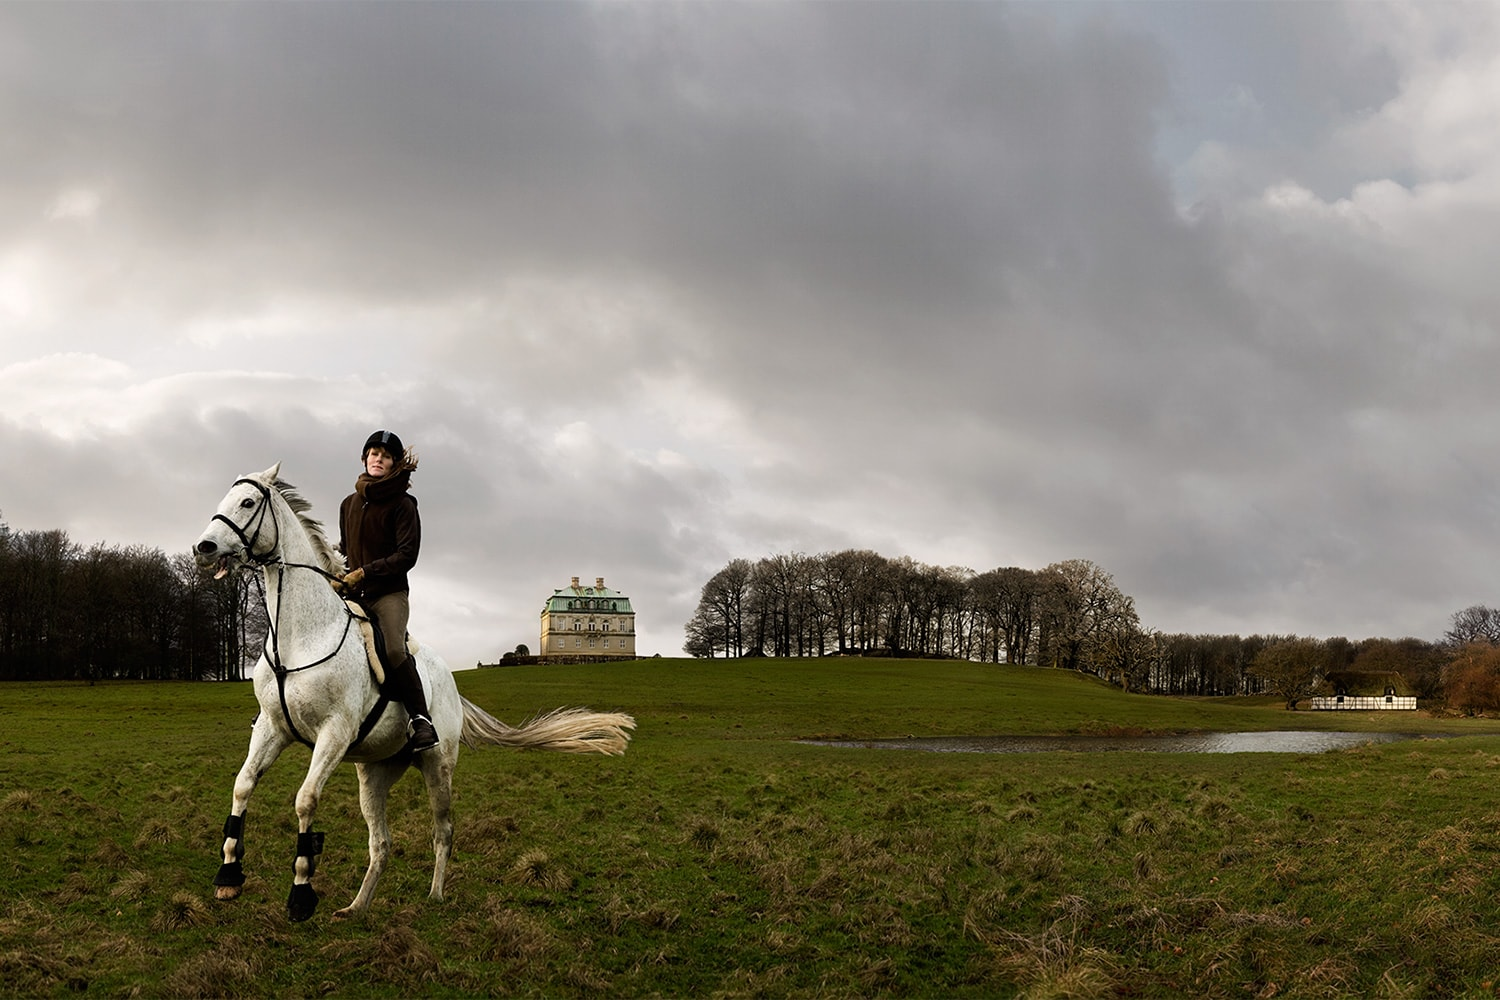 Female-riding-white-horse-in-a-field-in-front-of-castle-Rod-McLean